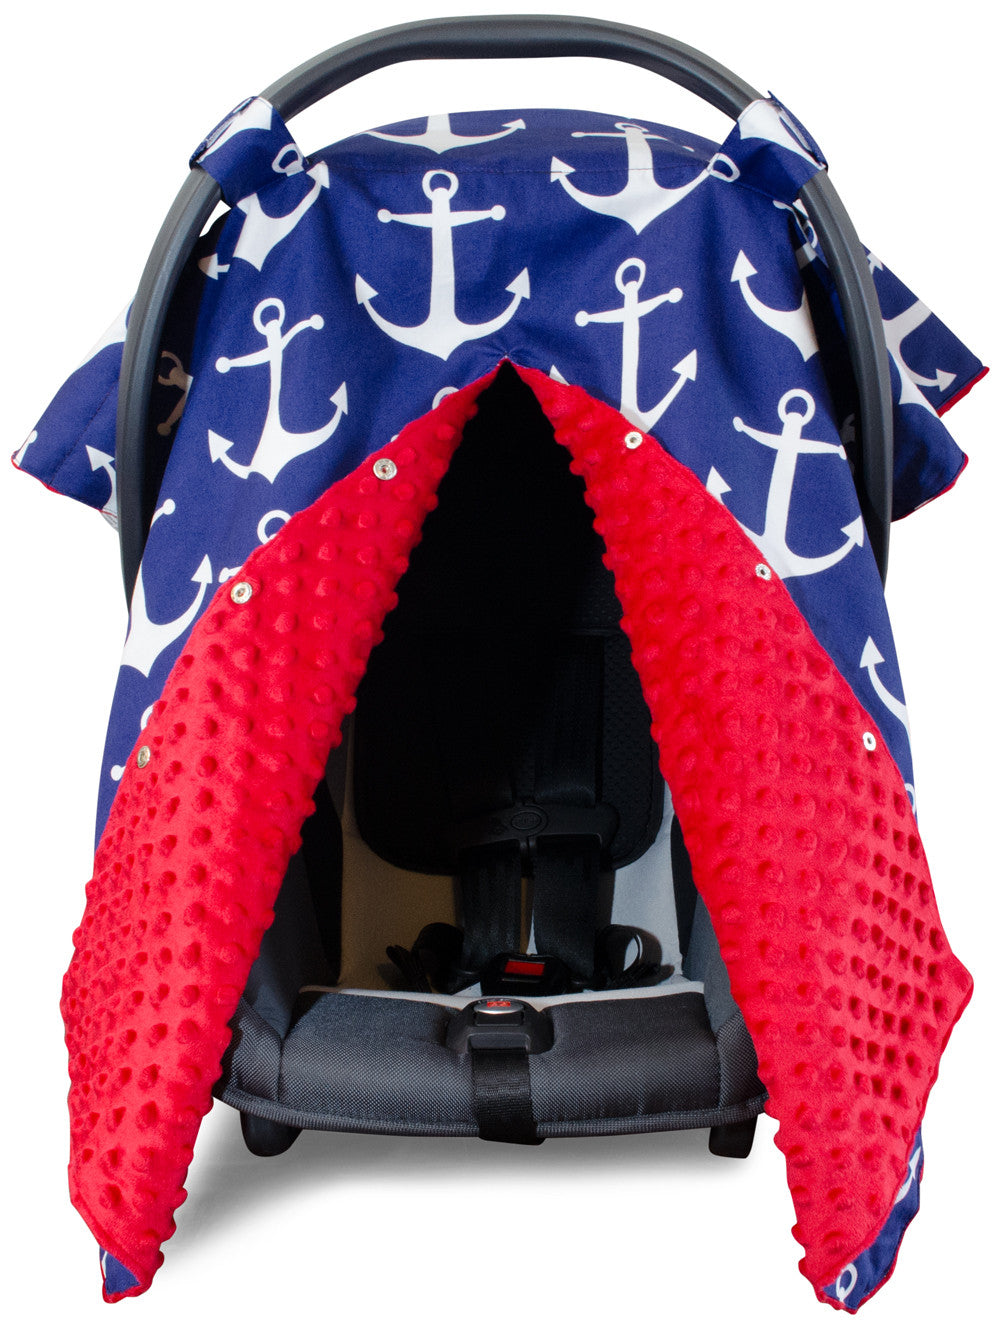 Nautical Anchor Car Seat Canopy With Red Dot Minky And Peekaboo